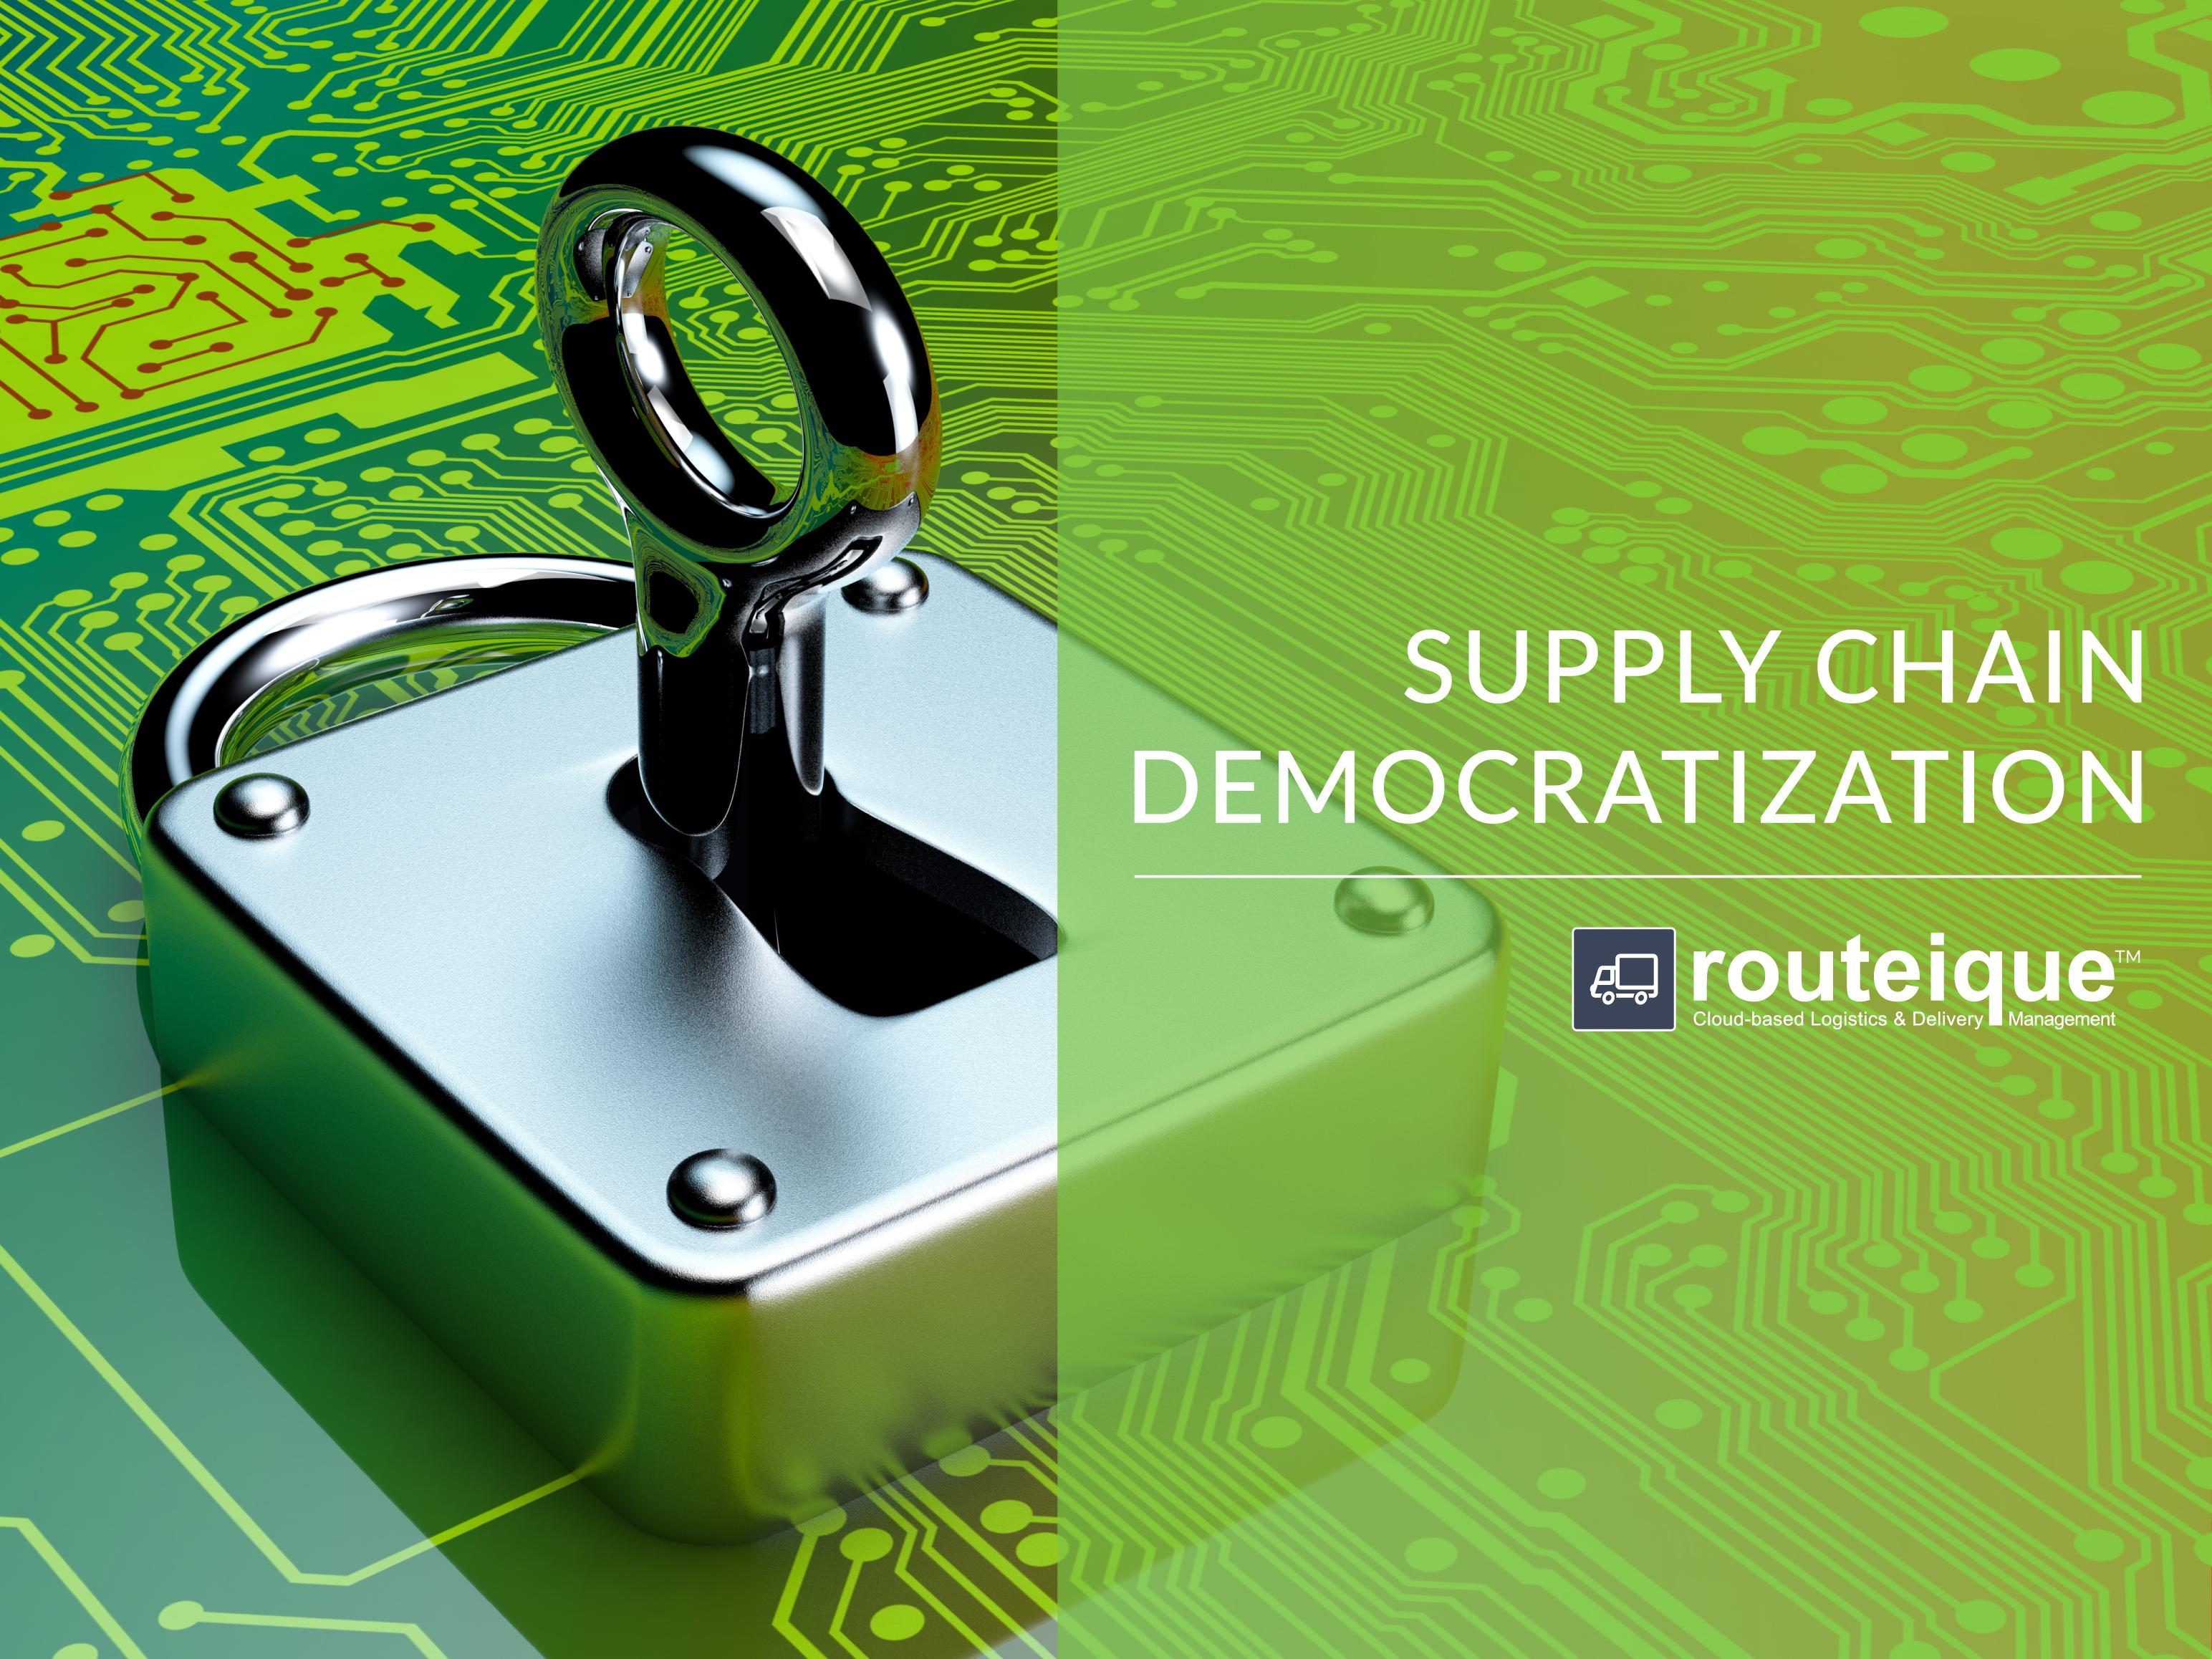 Supply Chain Democratization